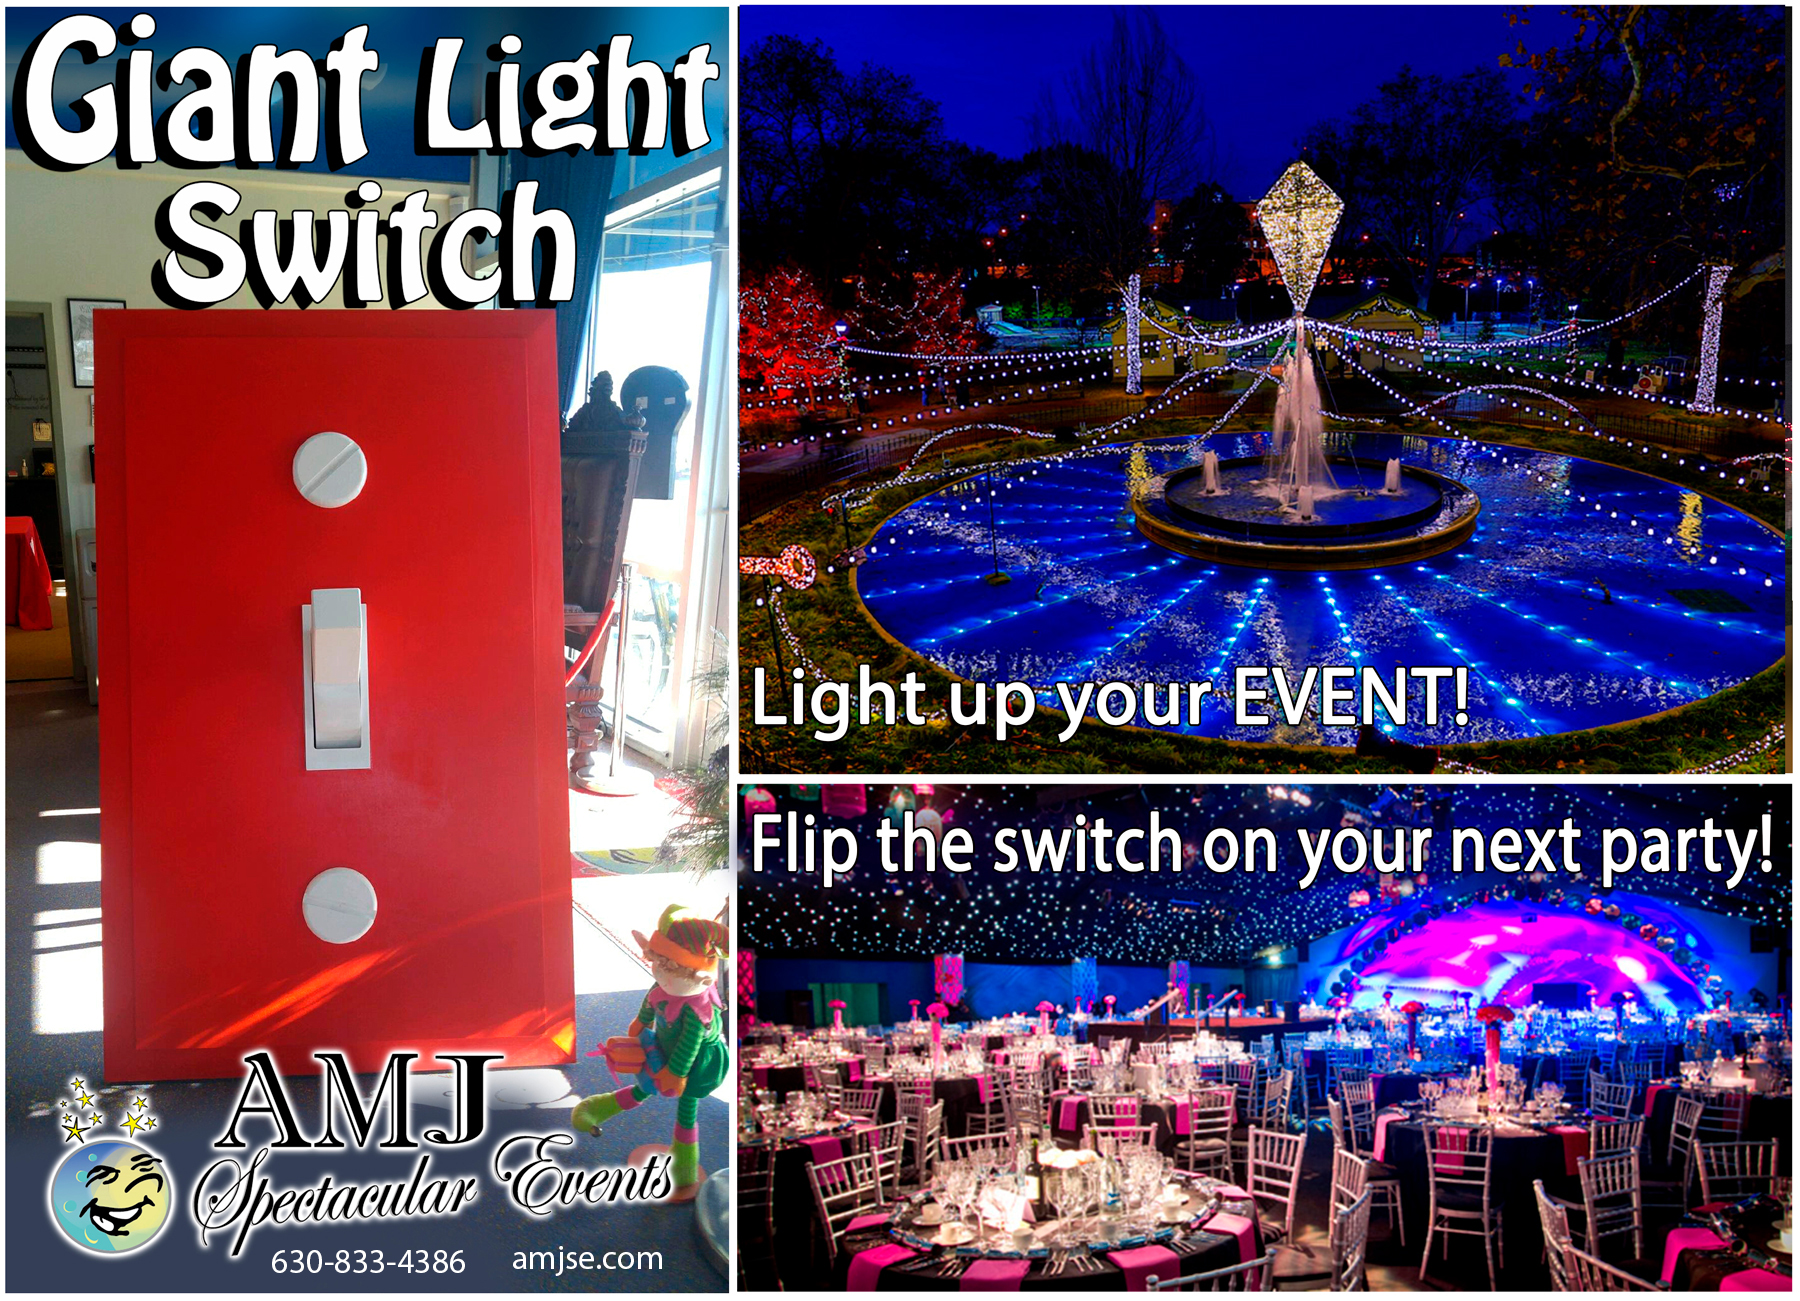 AMJ Spectacular Events Christmas Rentals Holiday Rentals  Spectacular Event Giant Light Switch